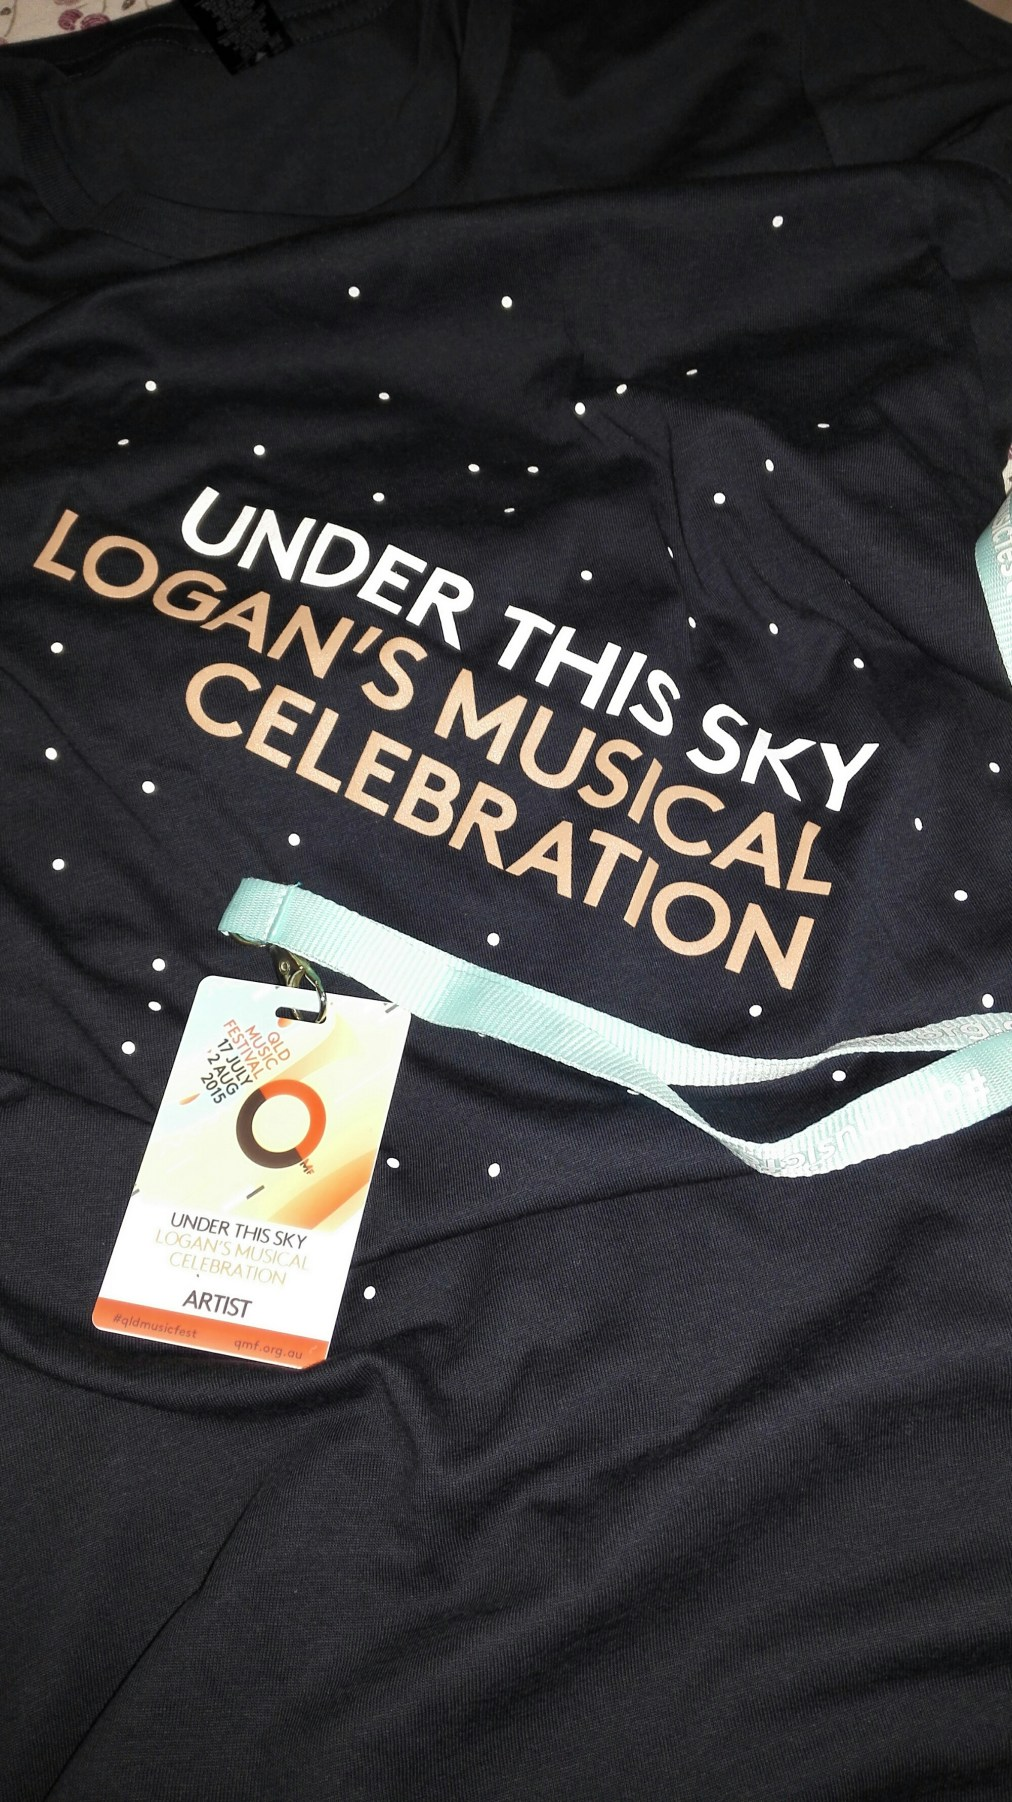 Festival pass and a t-shirt